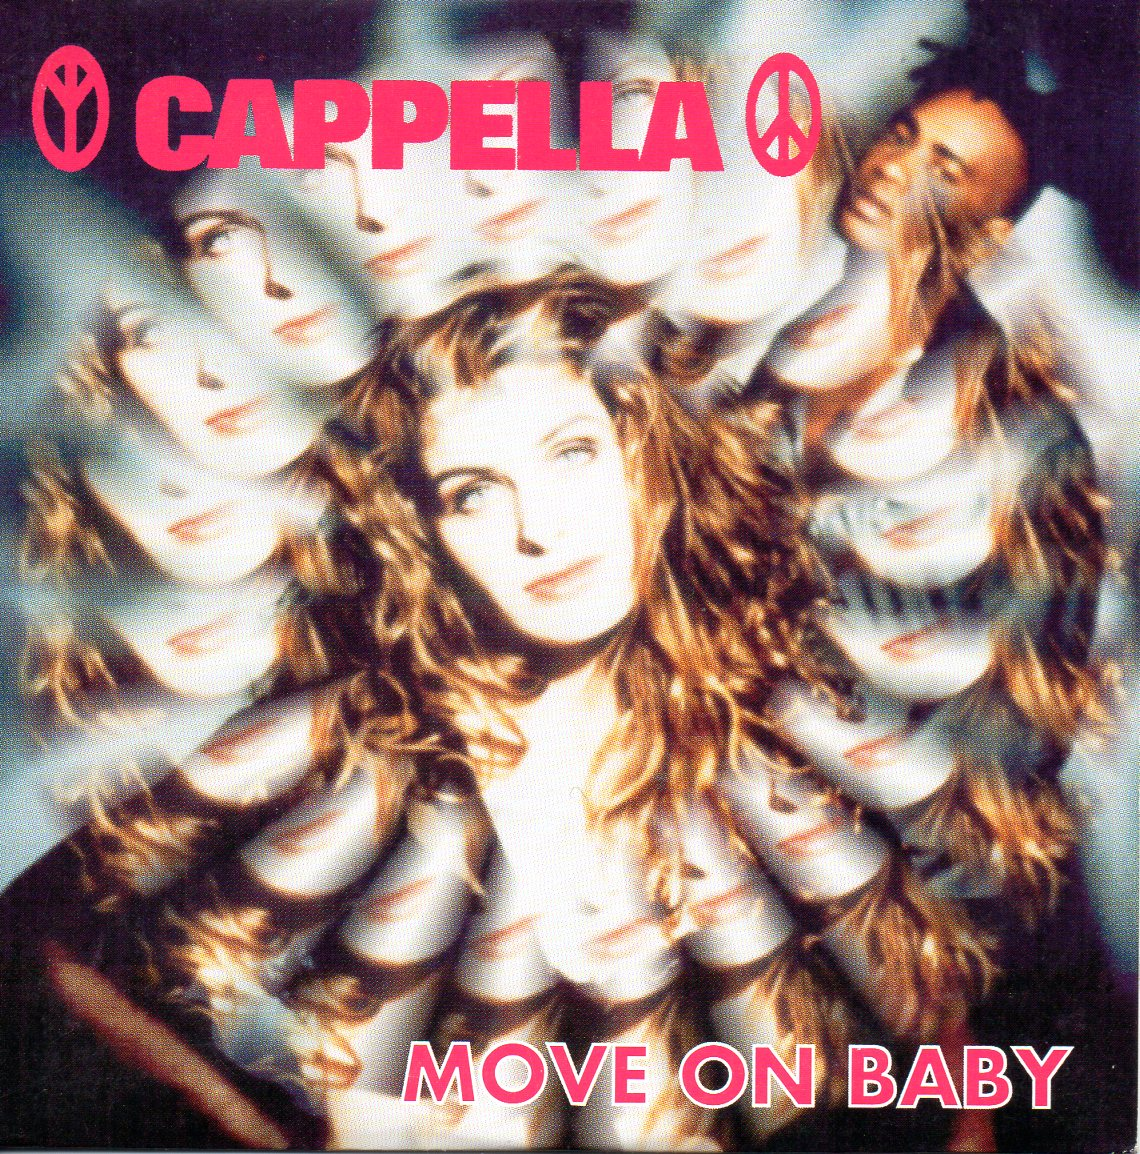 CAPPELLA - Move on baby 2-track CARD SLEEVE - CD single